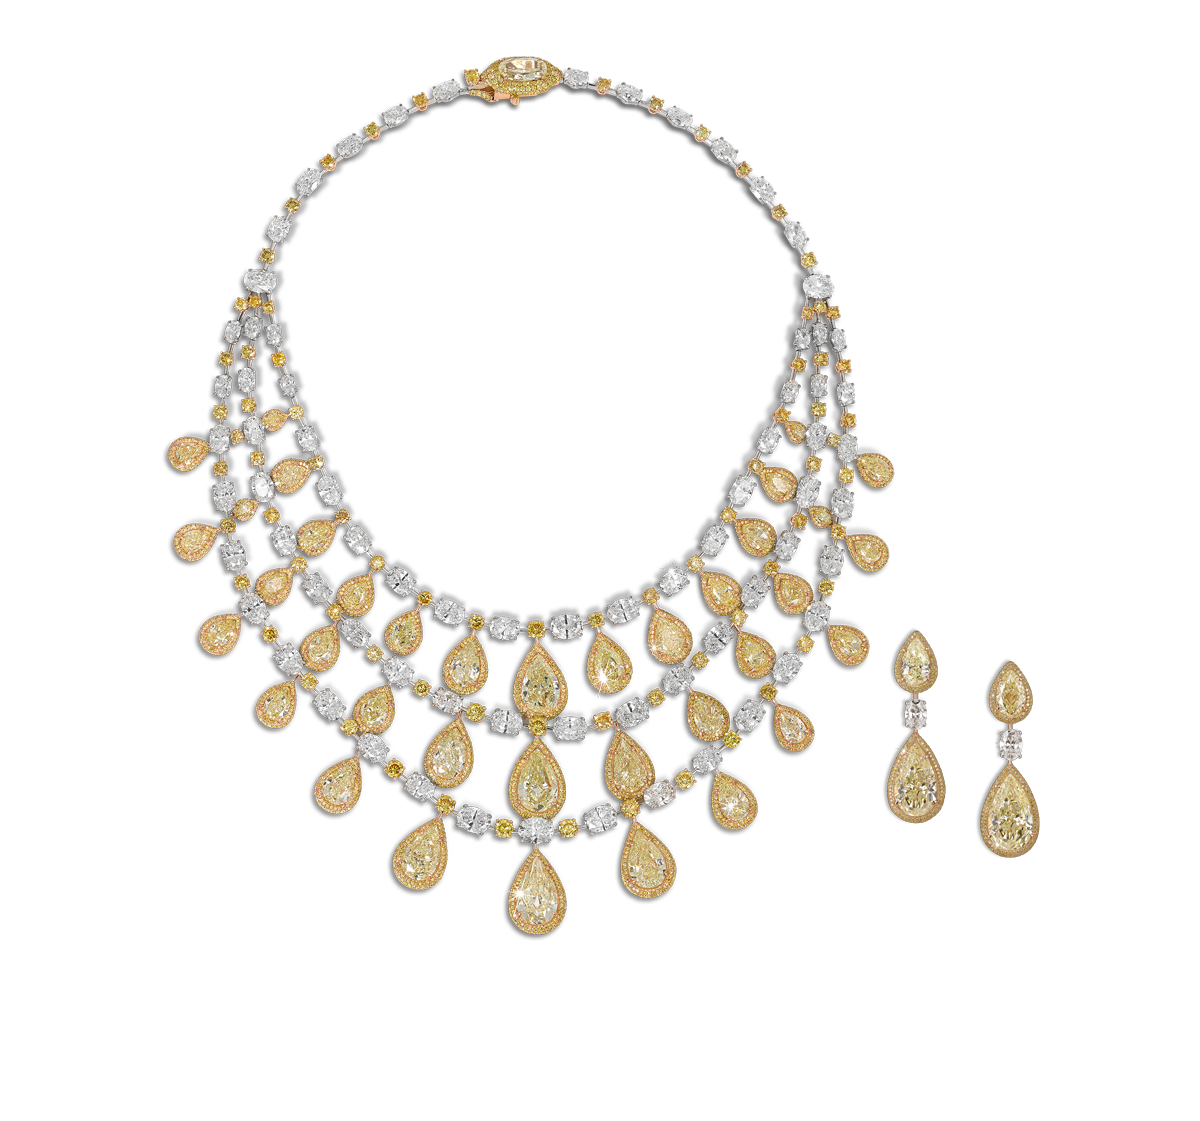 Yellow pear shape diamond necklace with white marquise and pear cut diamonds Total yellow diamond weight 105.32cts Total white diamond weight 51.54cts with matching earrings